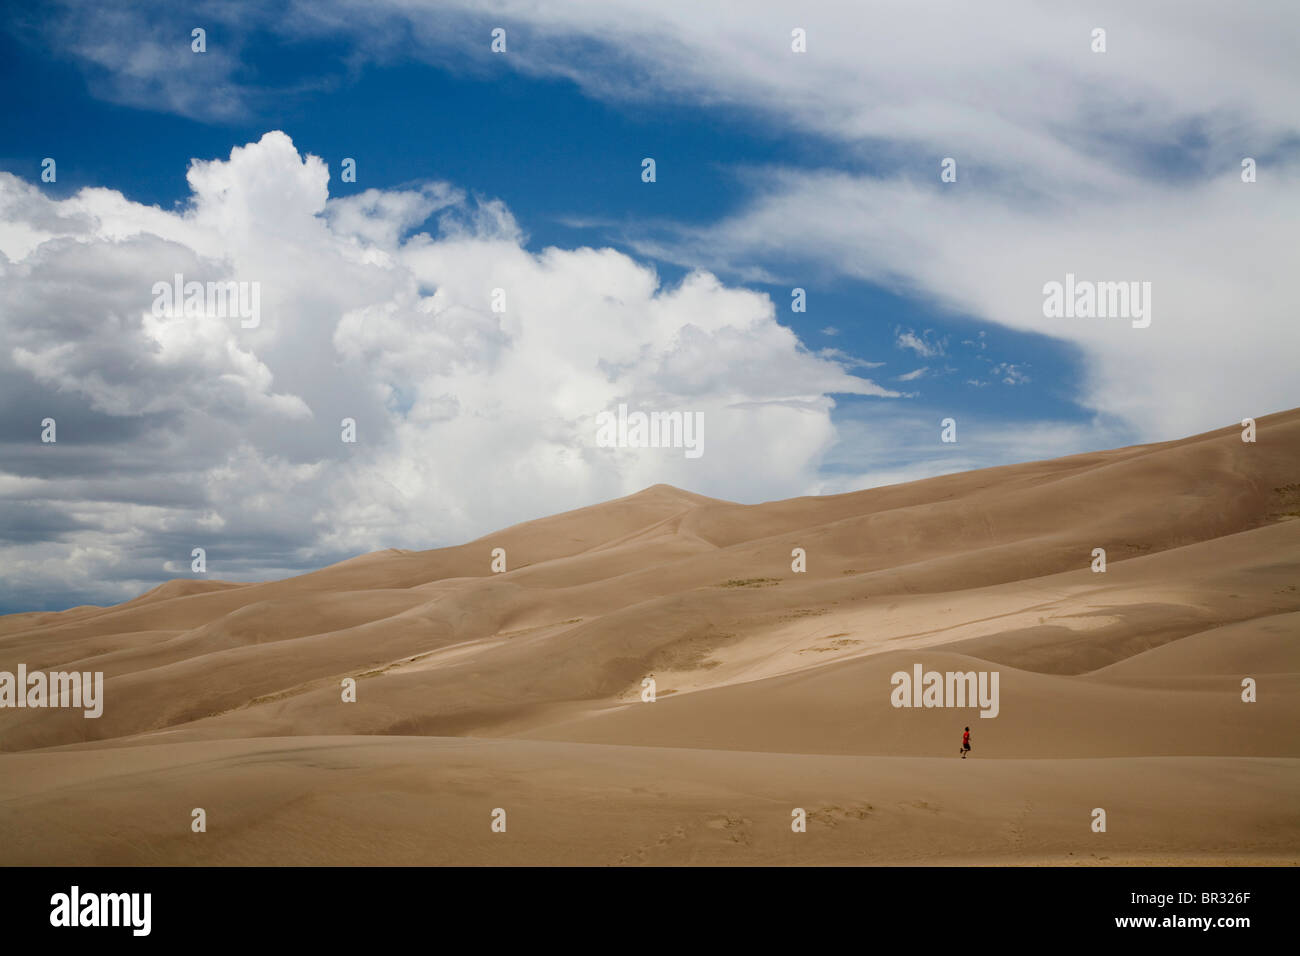 A runner appears small compared to dunes of Great Sand Dunes National Park, CO. - Stock Image